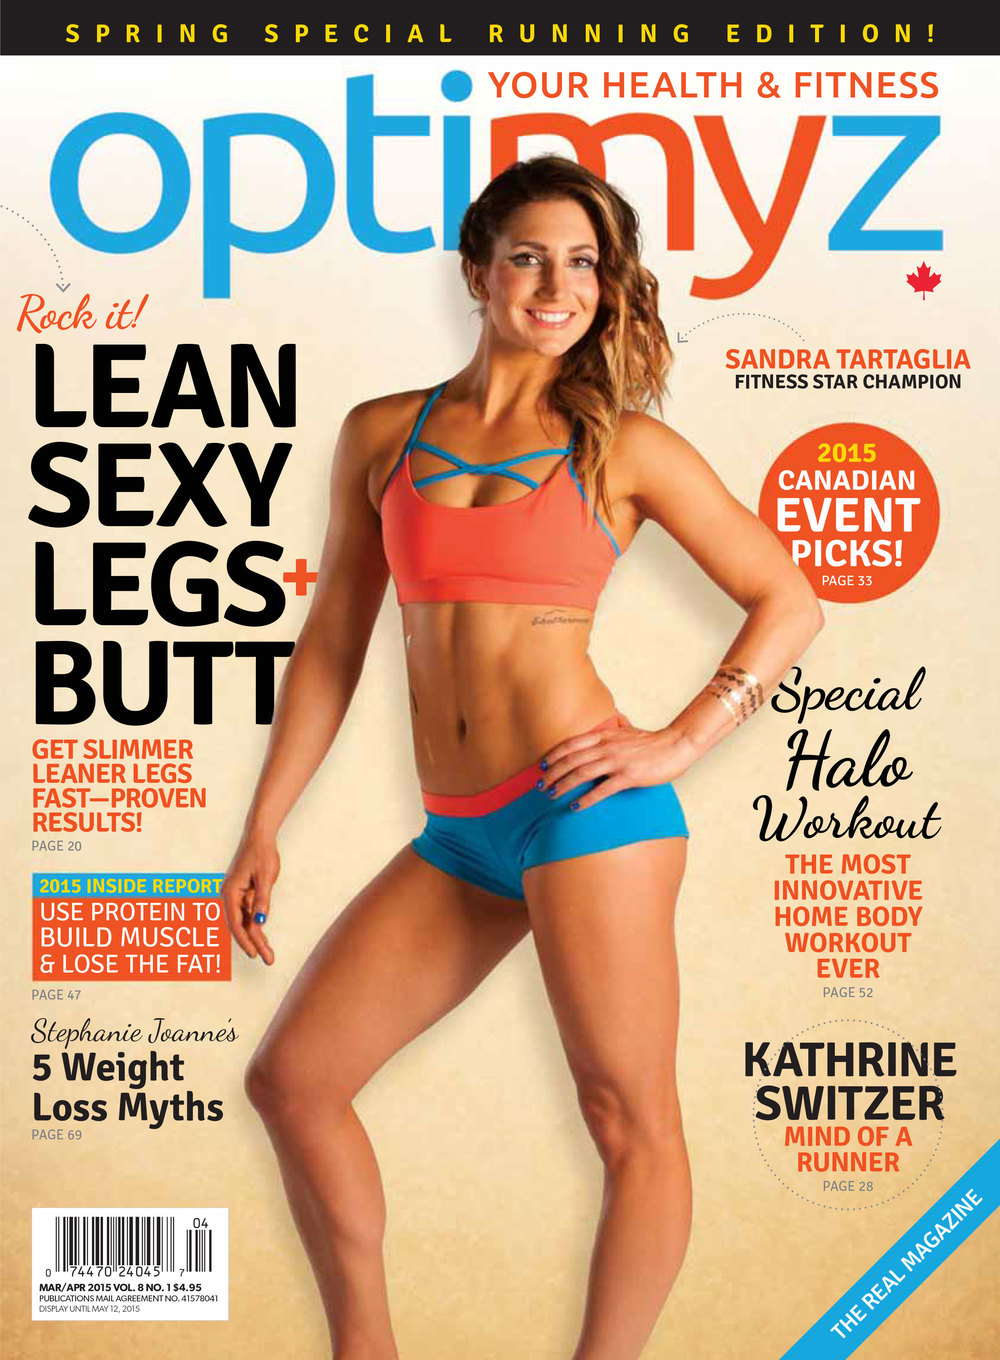 optimyz magazine march/april 2015 issue